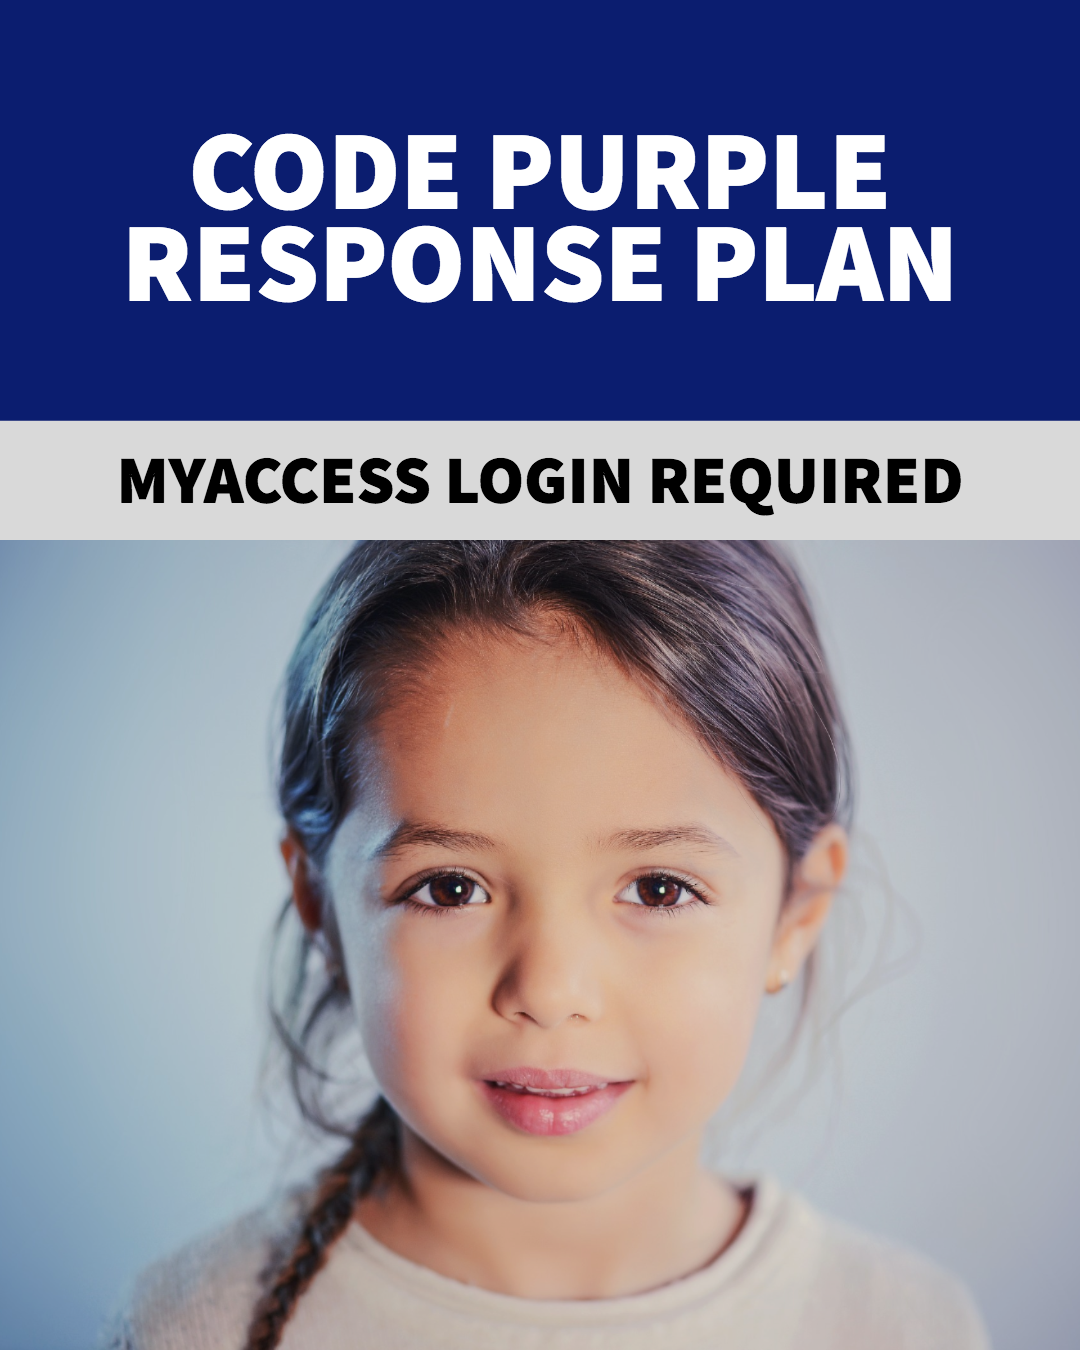 Code Purple Response Plan